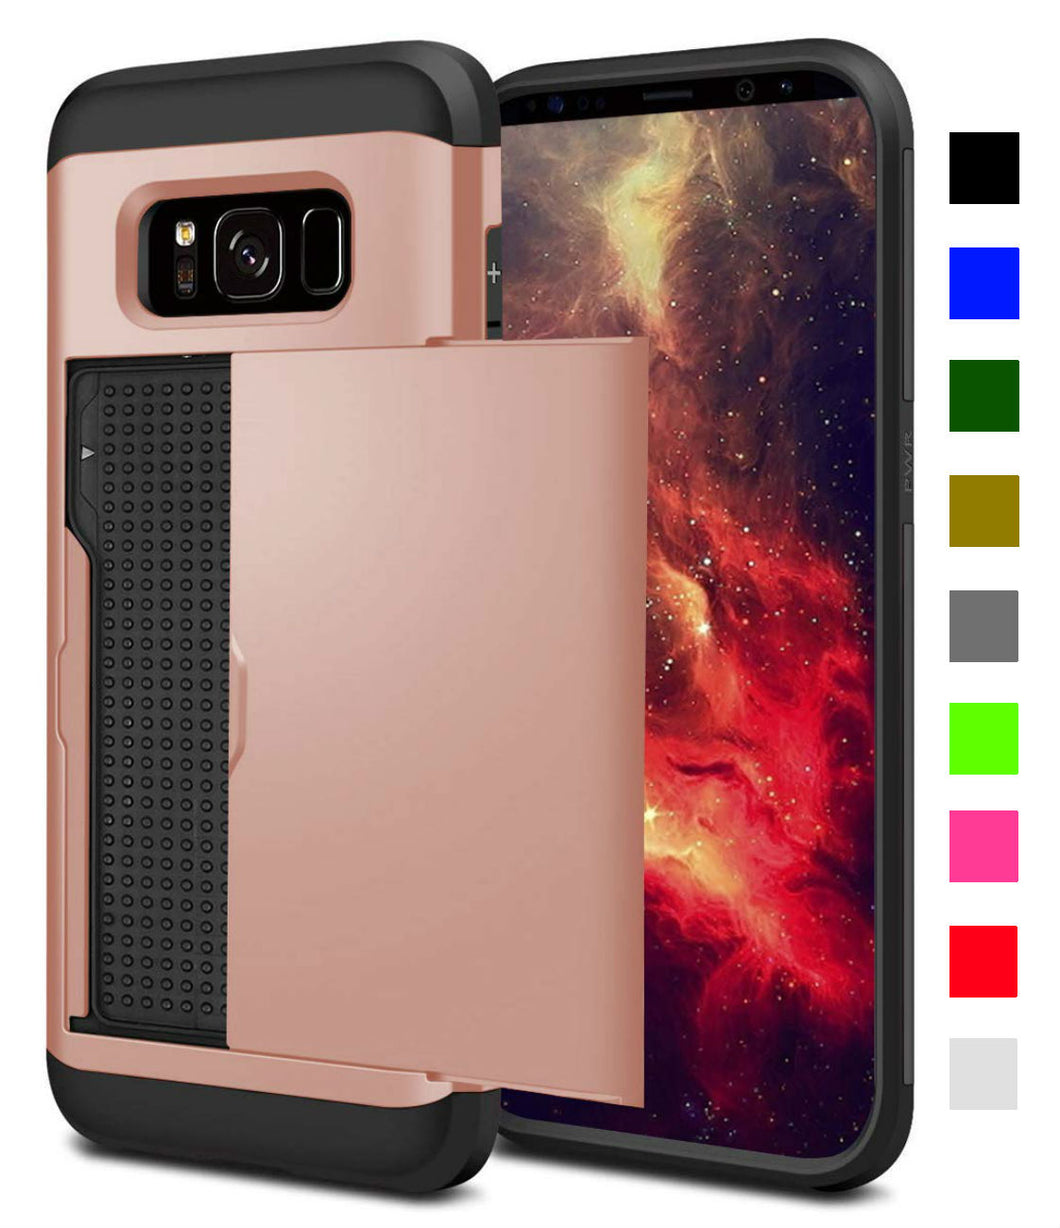 Card Slot Tough Armor Wallet Design Case Samsung Galaxy S10, S10 Plus, or S10 Edge - BingBongBoom